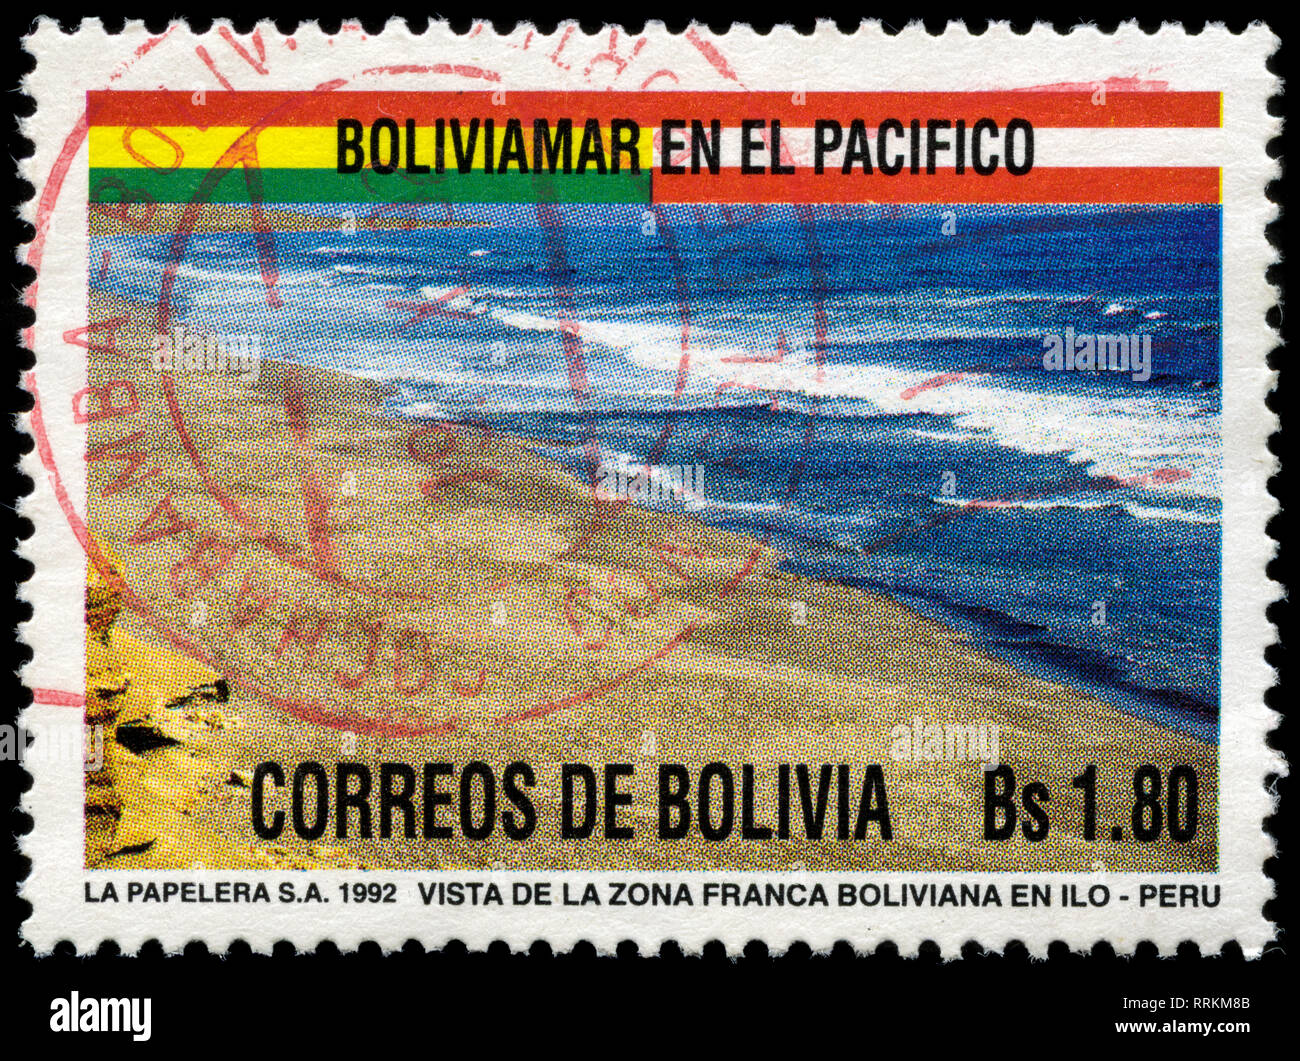 Postage stamp from Bolivia in the Agreement between Peru and Bolivia on the free port of Ilo series issued in 1992 - Stock Image